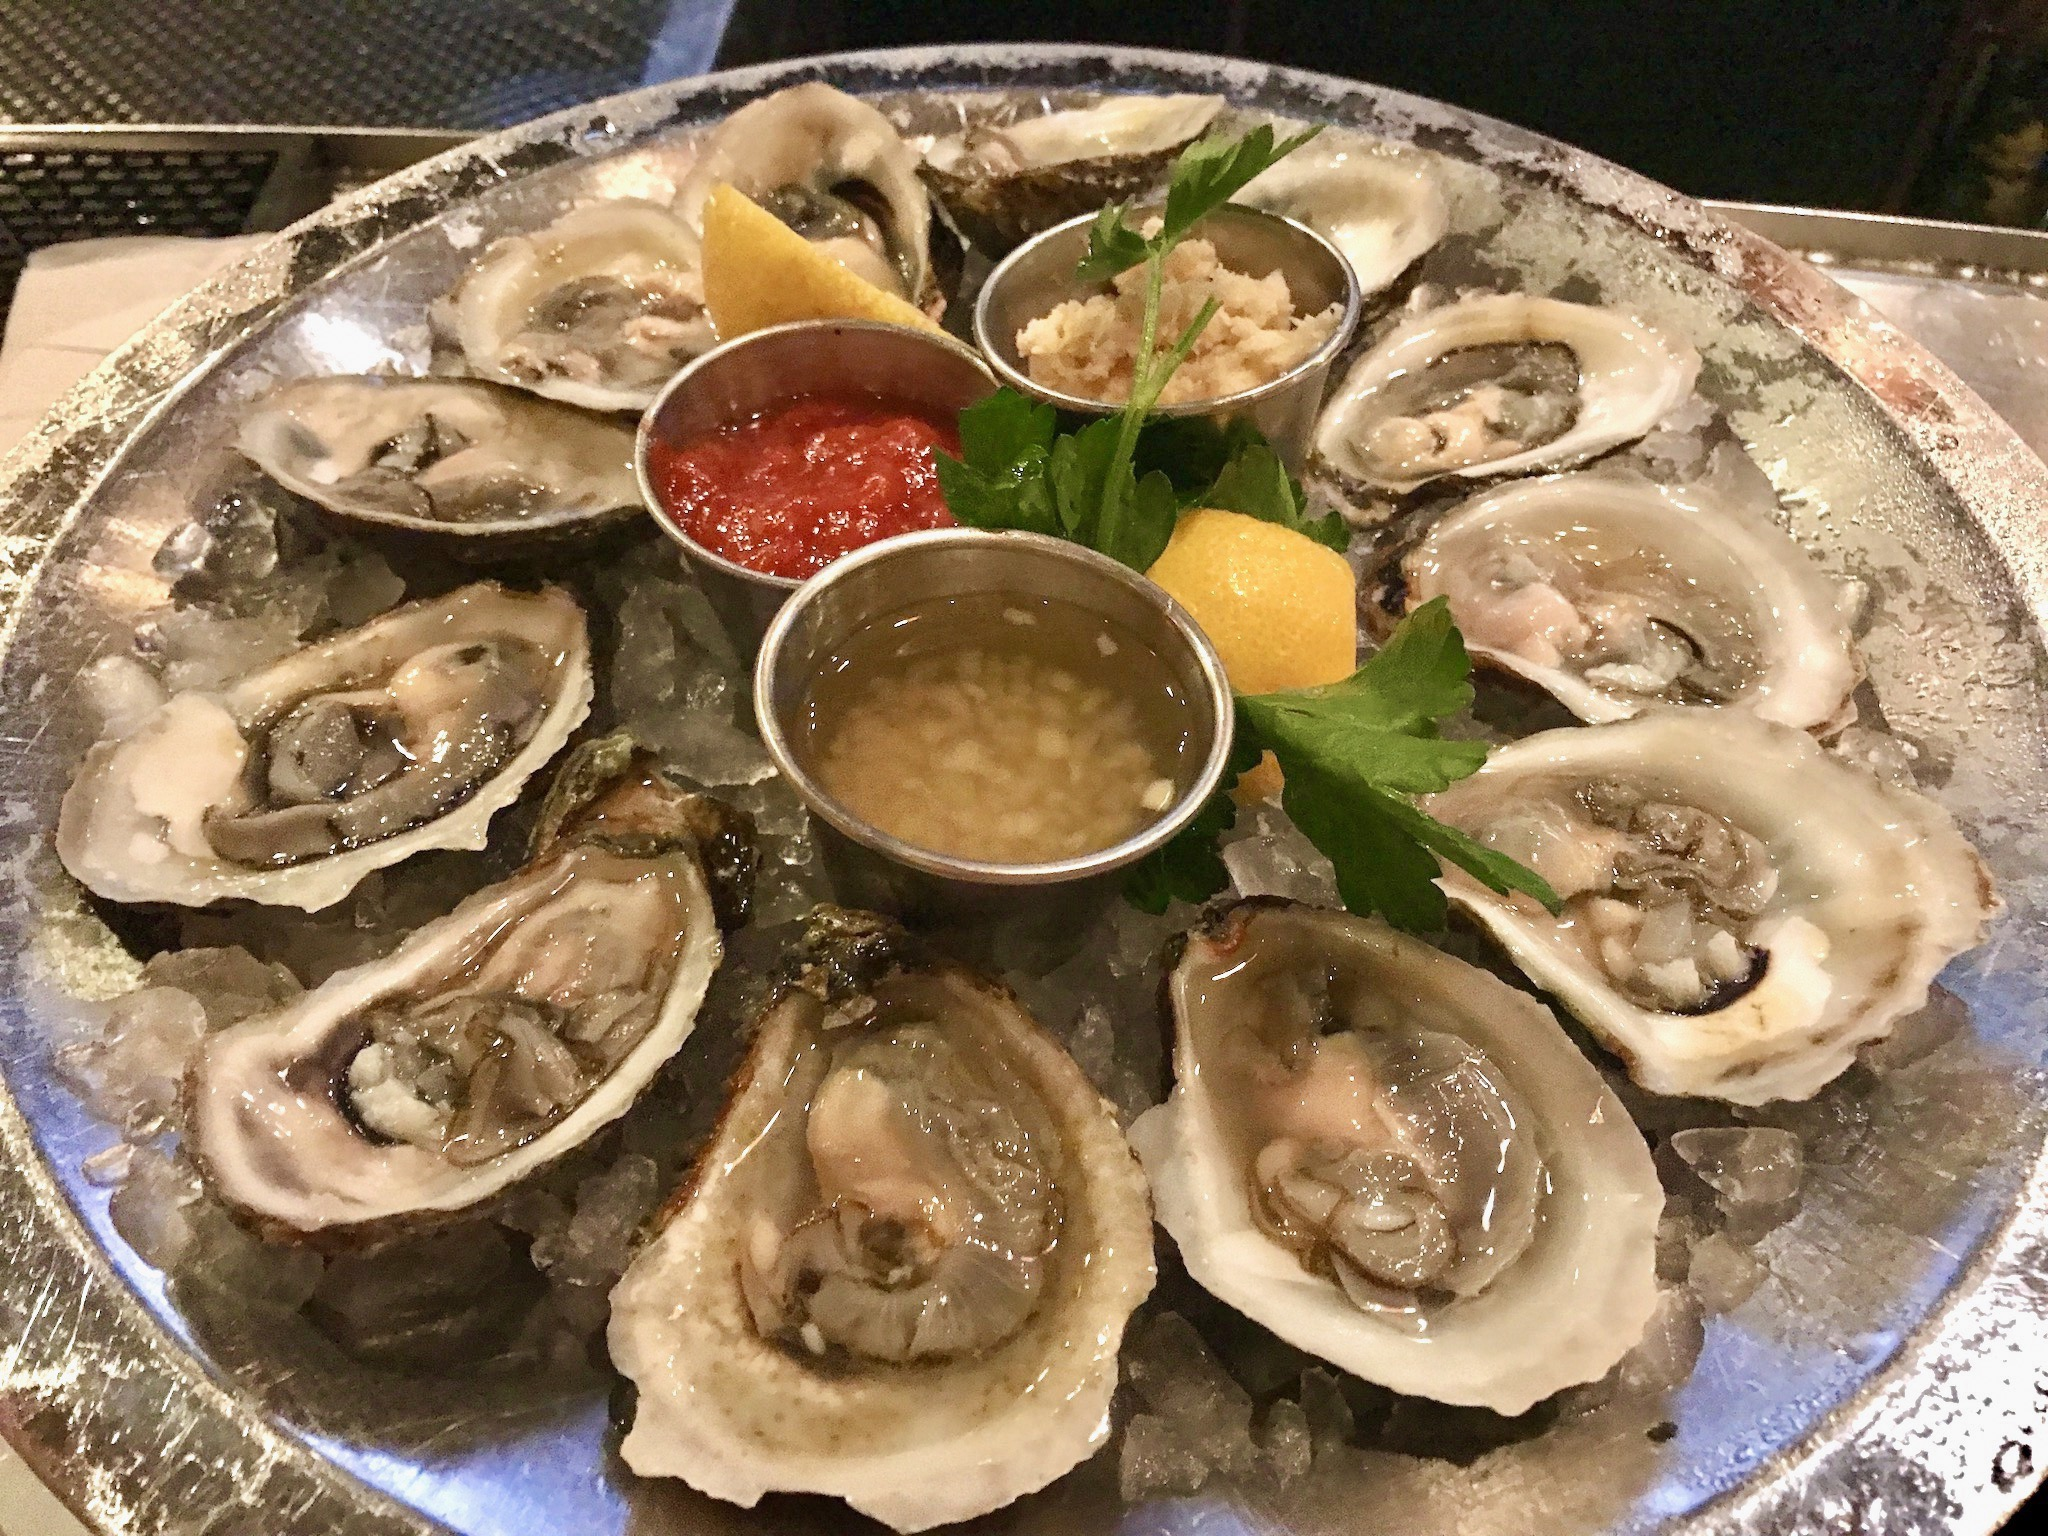 Oysters on the halfshell at Parkshore Grill